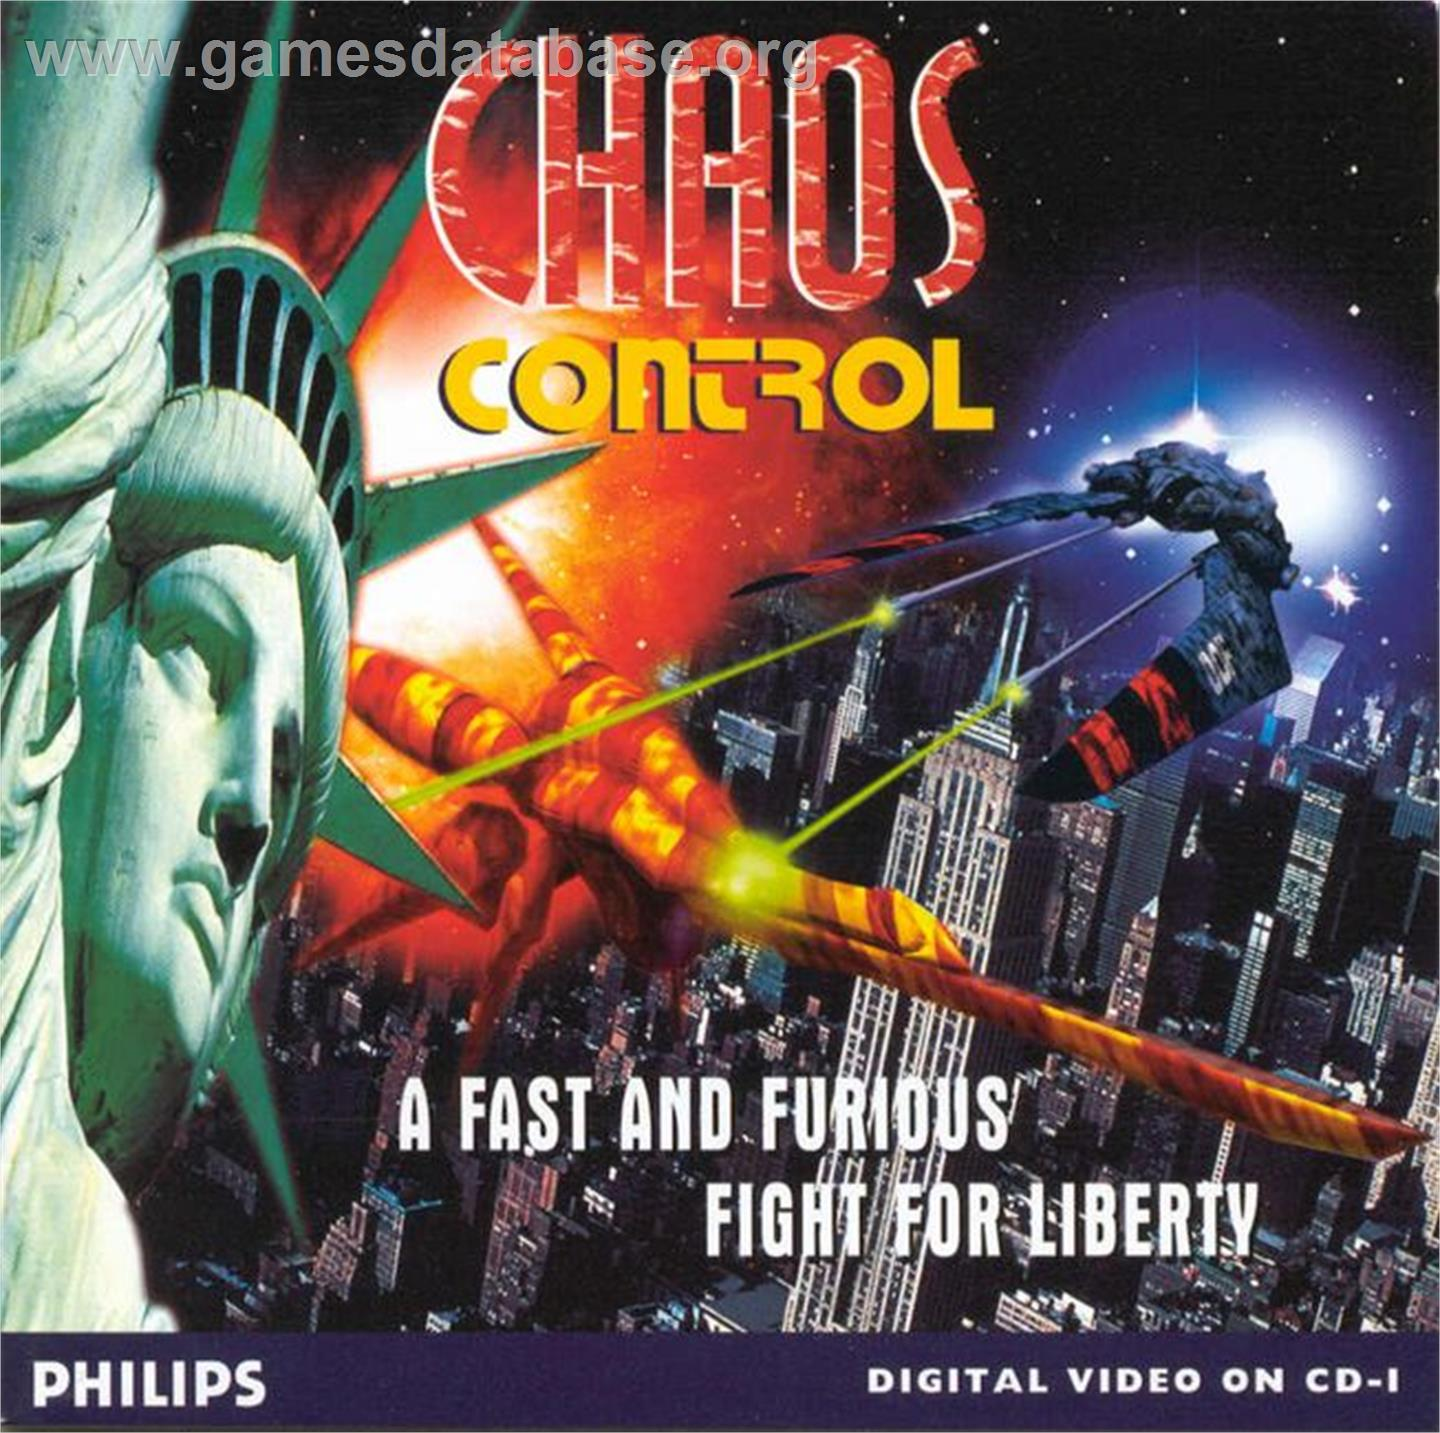 Chaos Control - Philips CD-i - Artwork - Box